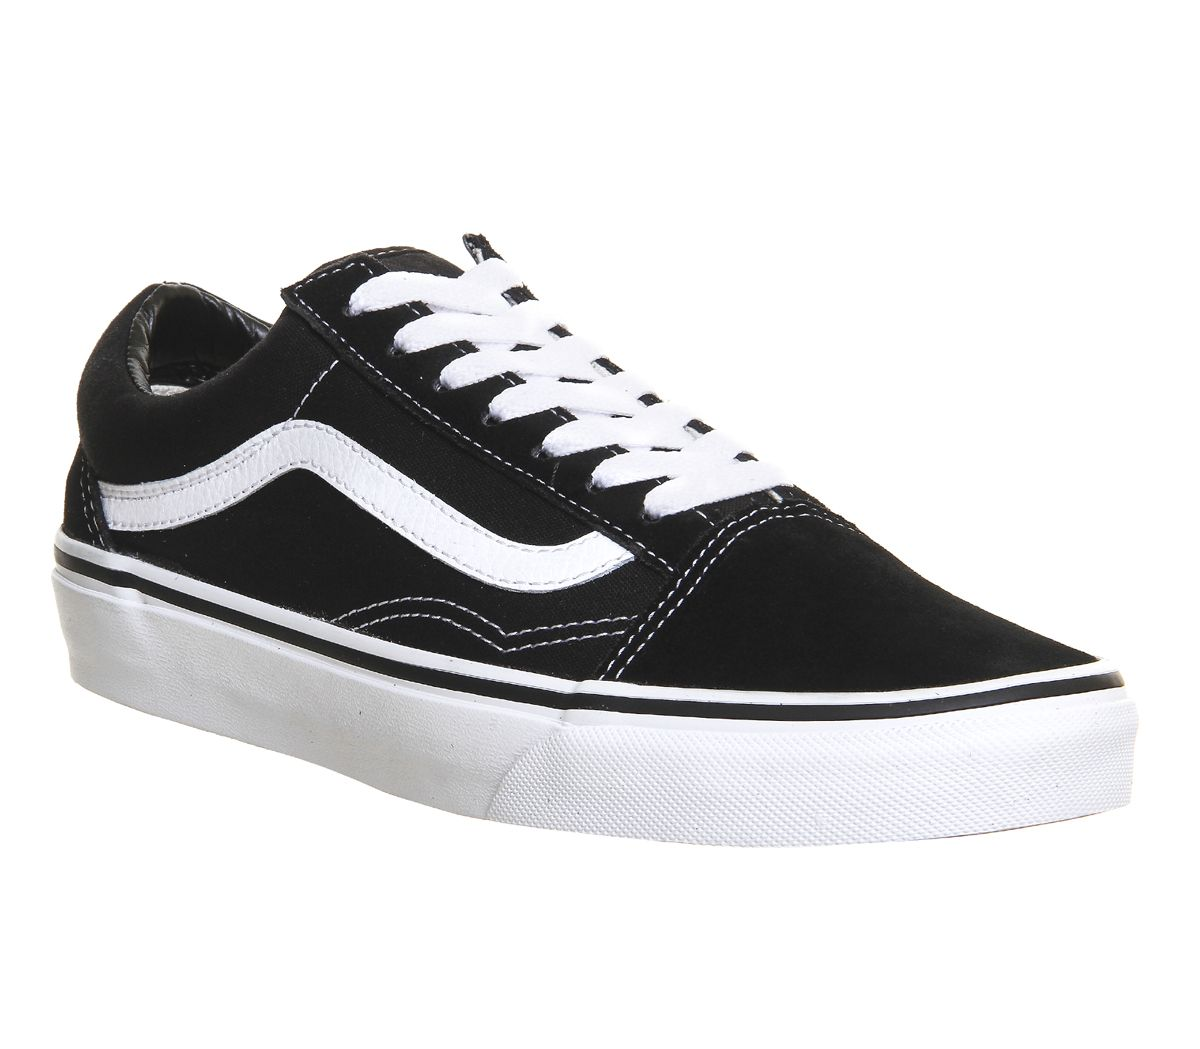 8dfd3b2c7c Vans Old Skool Trainers Black - Unisex Sports